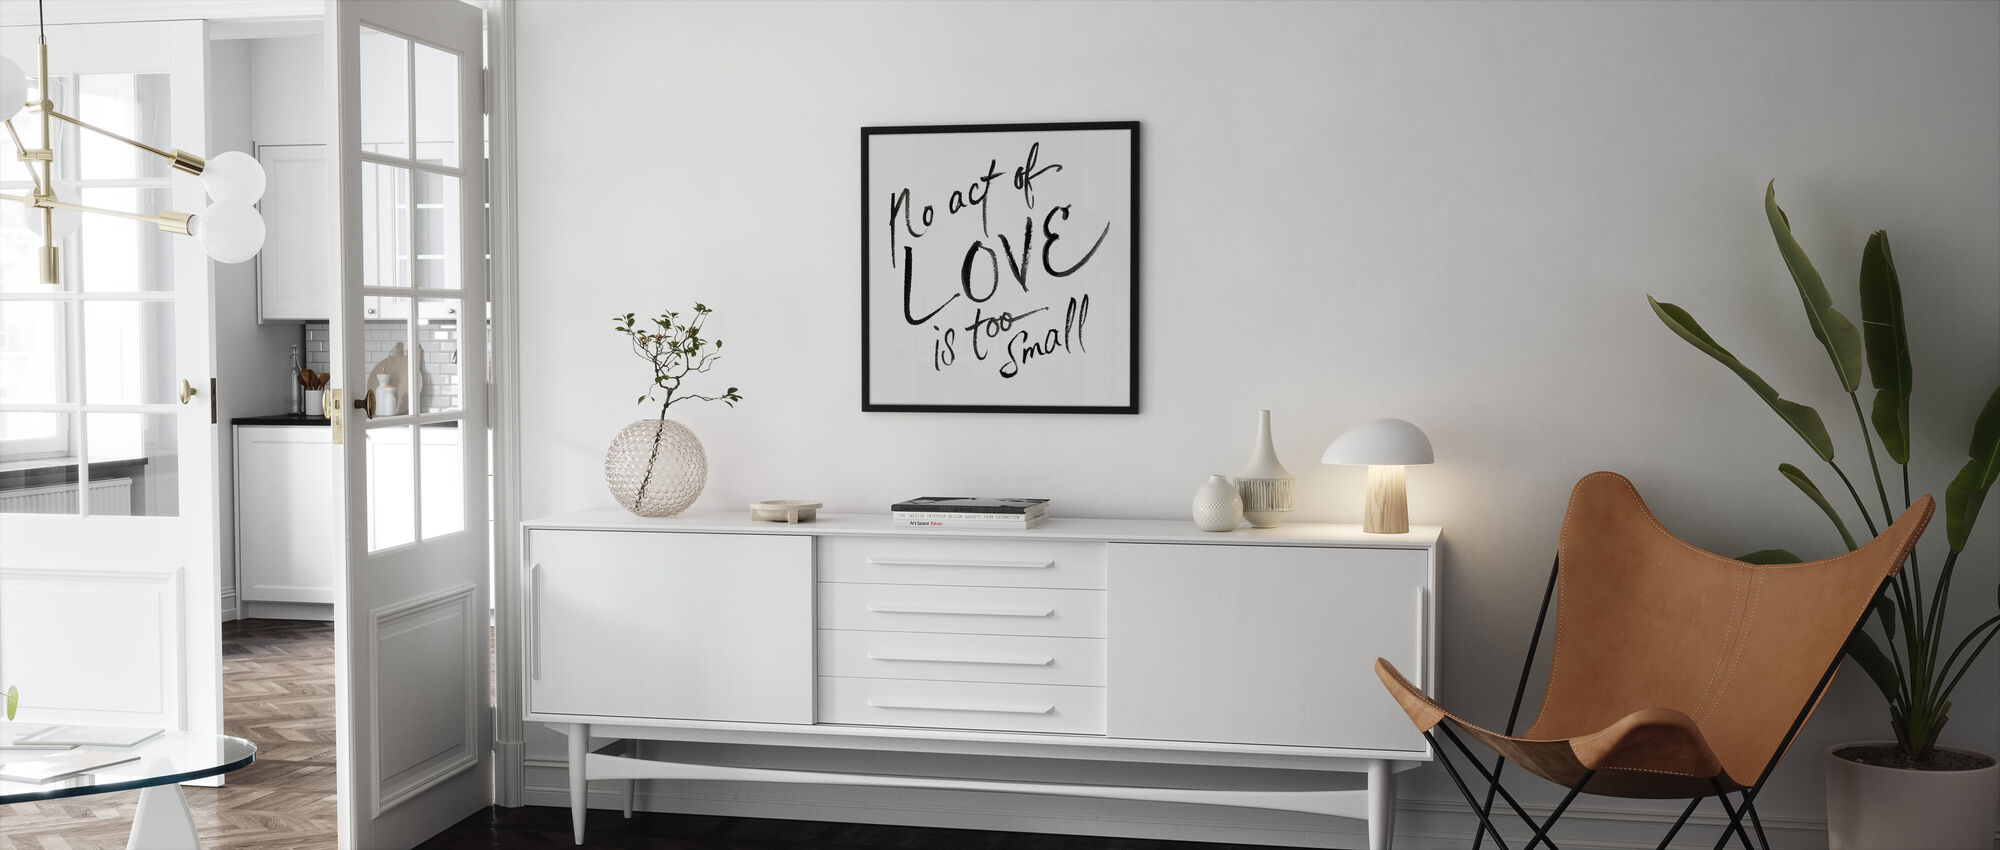 No Act Too Small - Framed print - Living Room